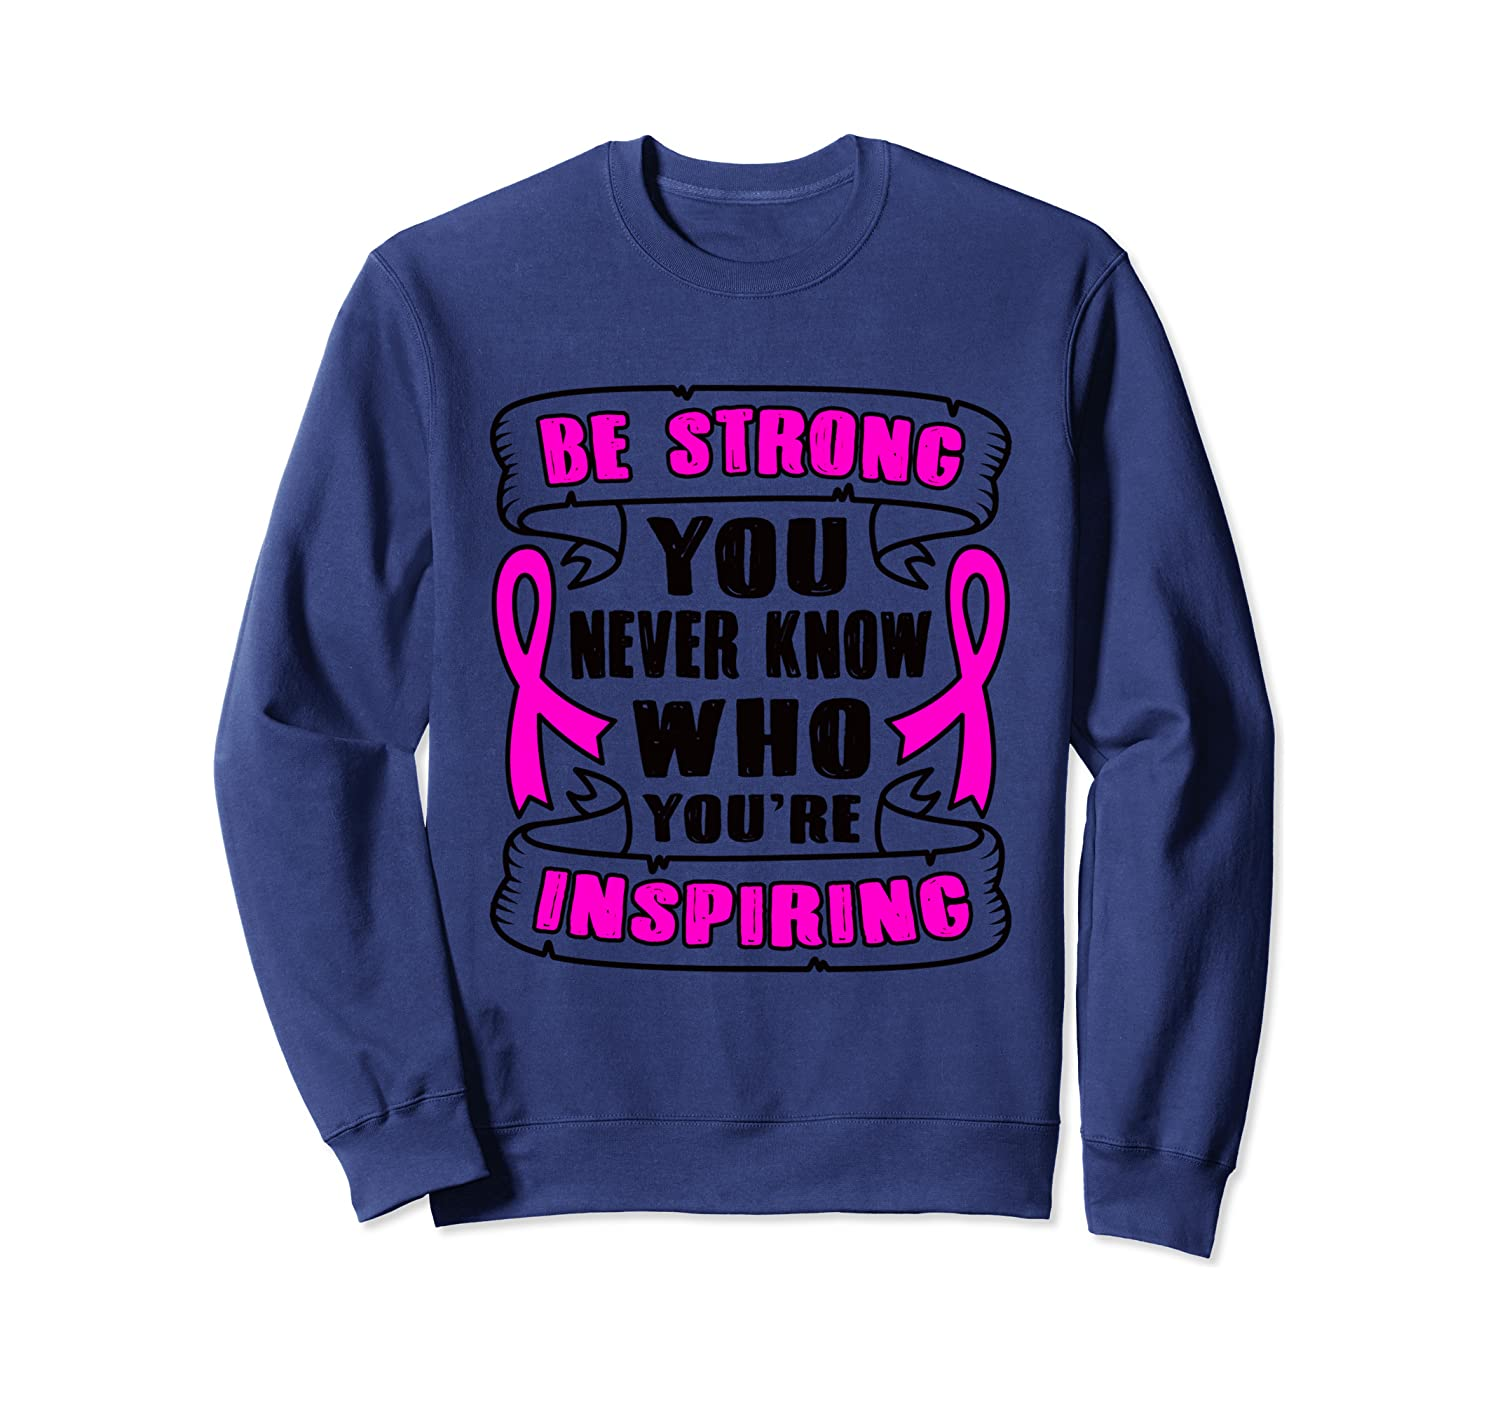 Flower pink Ribbon Cancer Awareness be strong inspire fight Sweatshirt